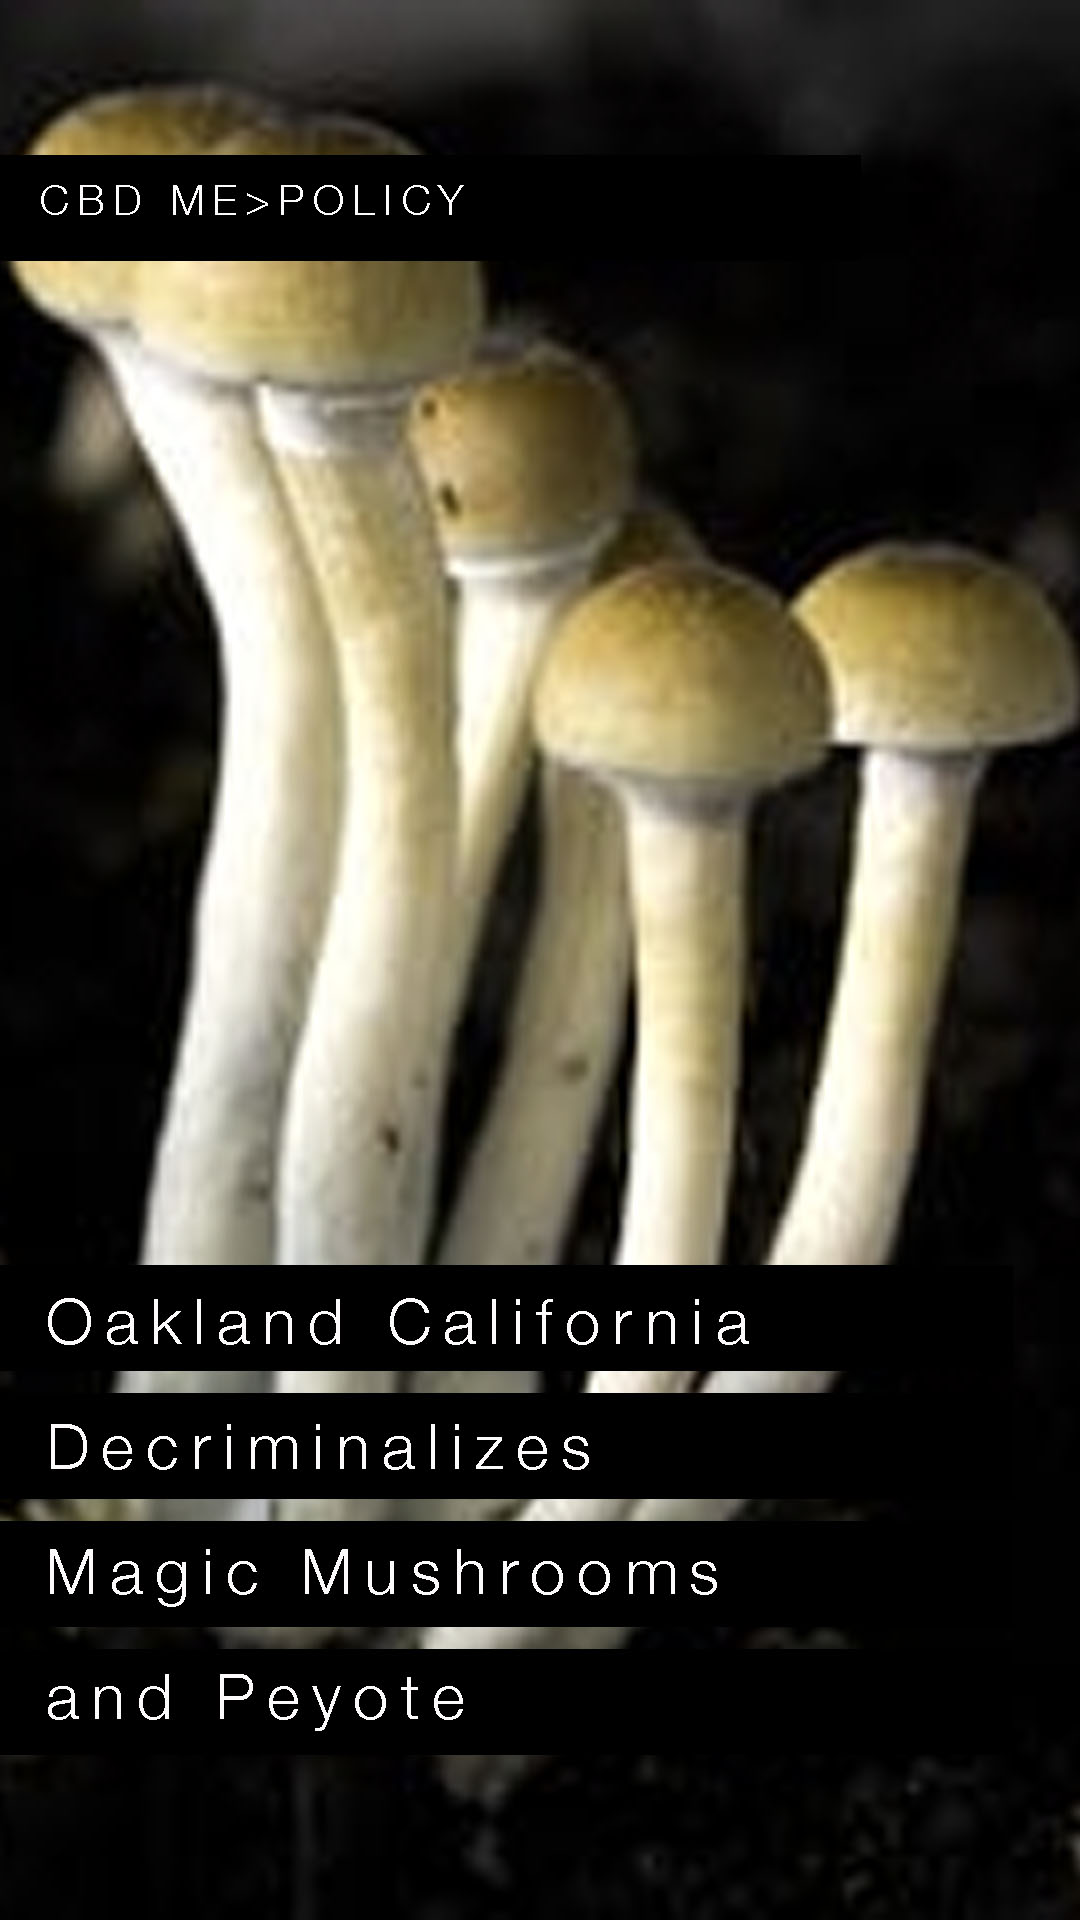 Oakland California Decriminalizes Magic Mushrooms and Peyote | USA TODAY